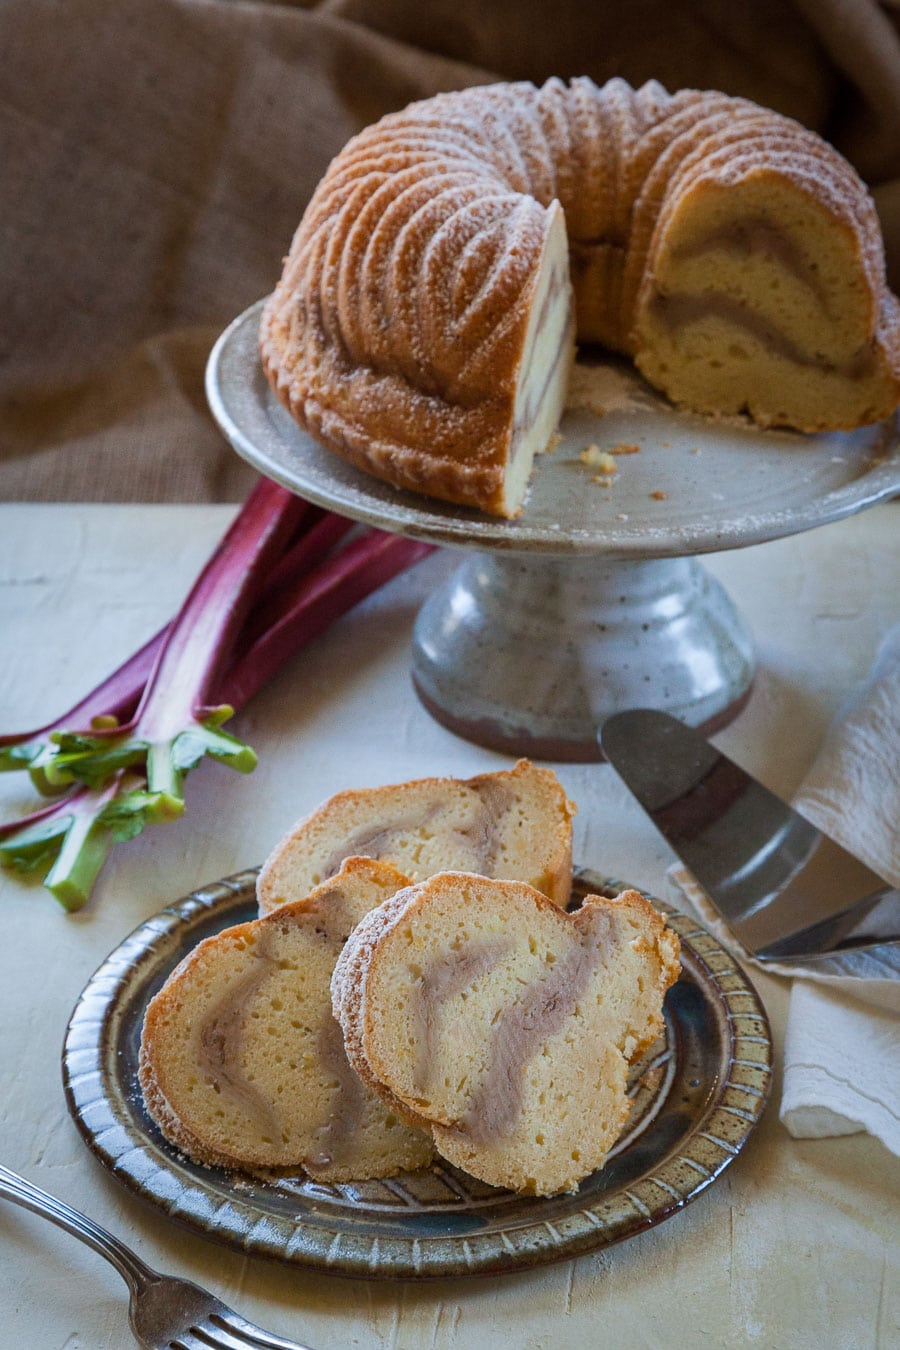 Rhubarb Meyer Lemon Cake. Photo and recipe by Irvin Lin of Eat the Love.